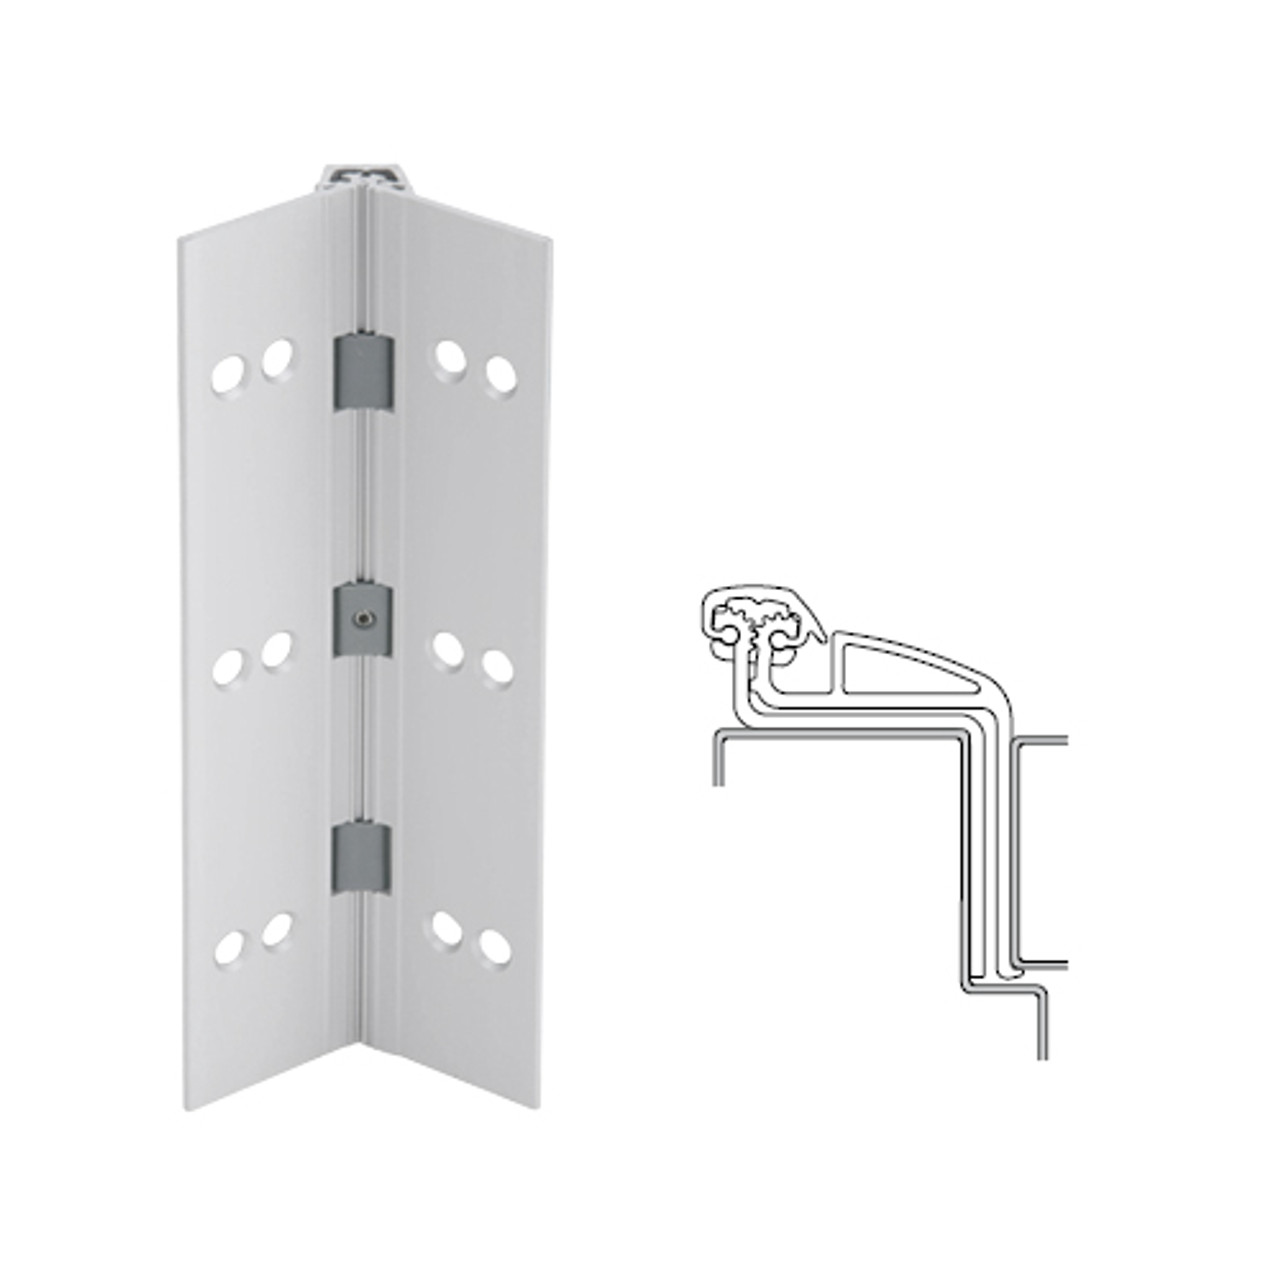 041XY-US28-95-WD IVES Full Mortise Continuous Geared Hinges with Wood Screws in Satin Aluminum